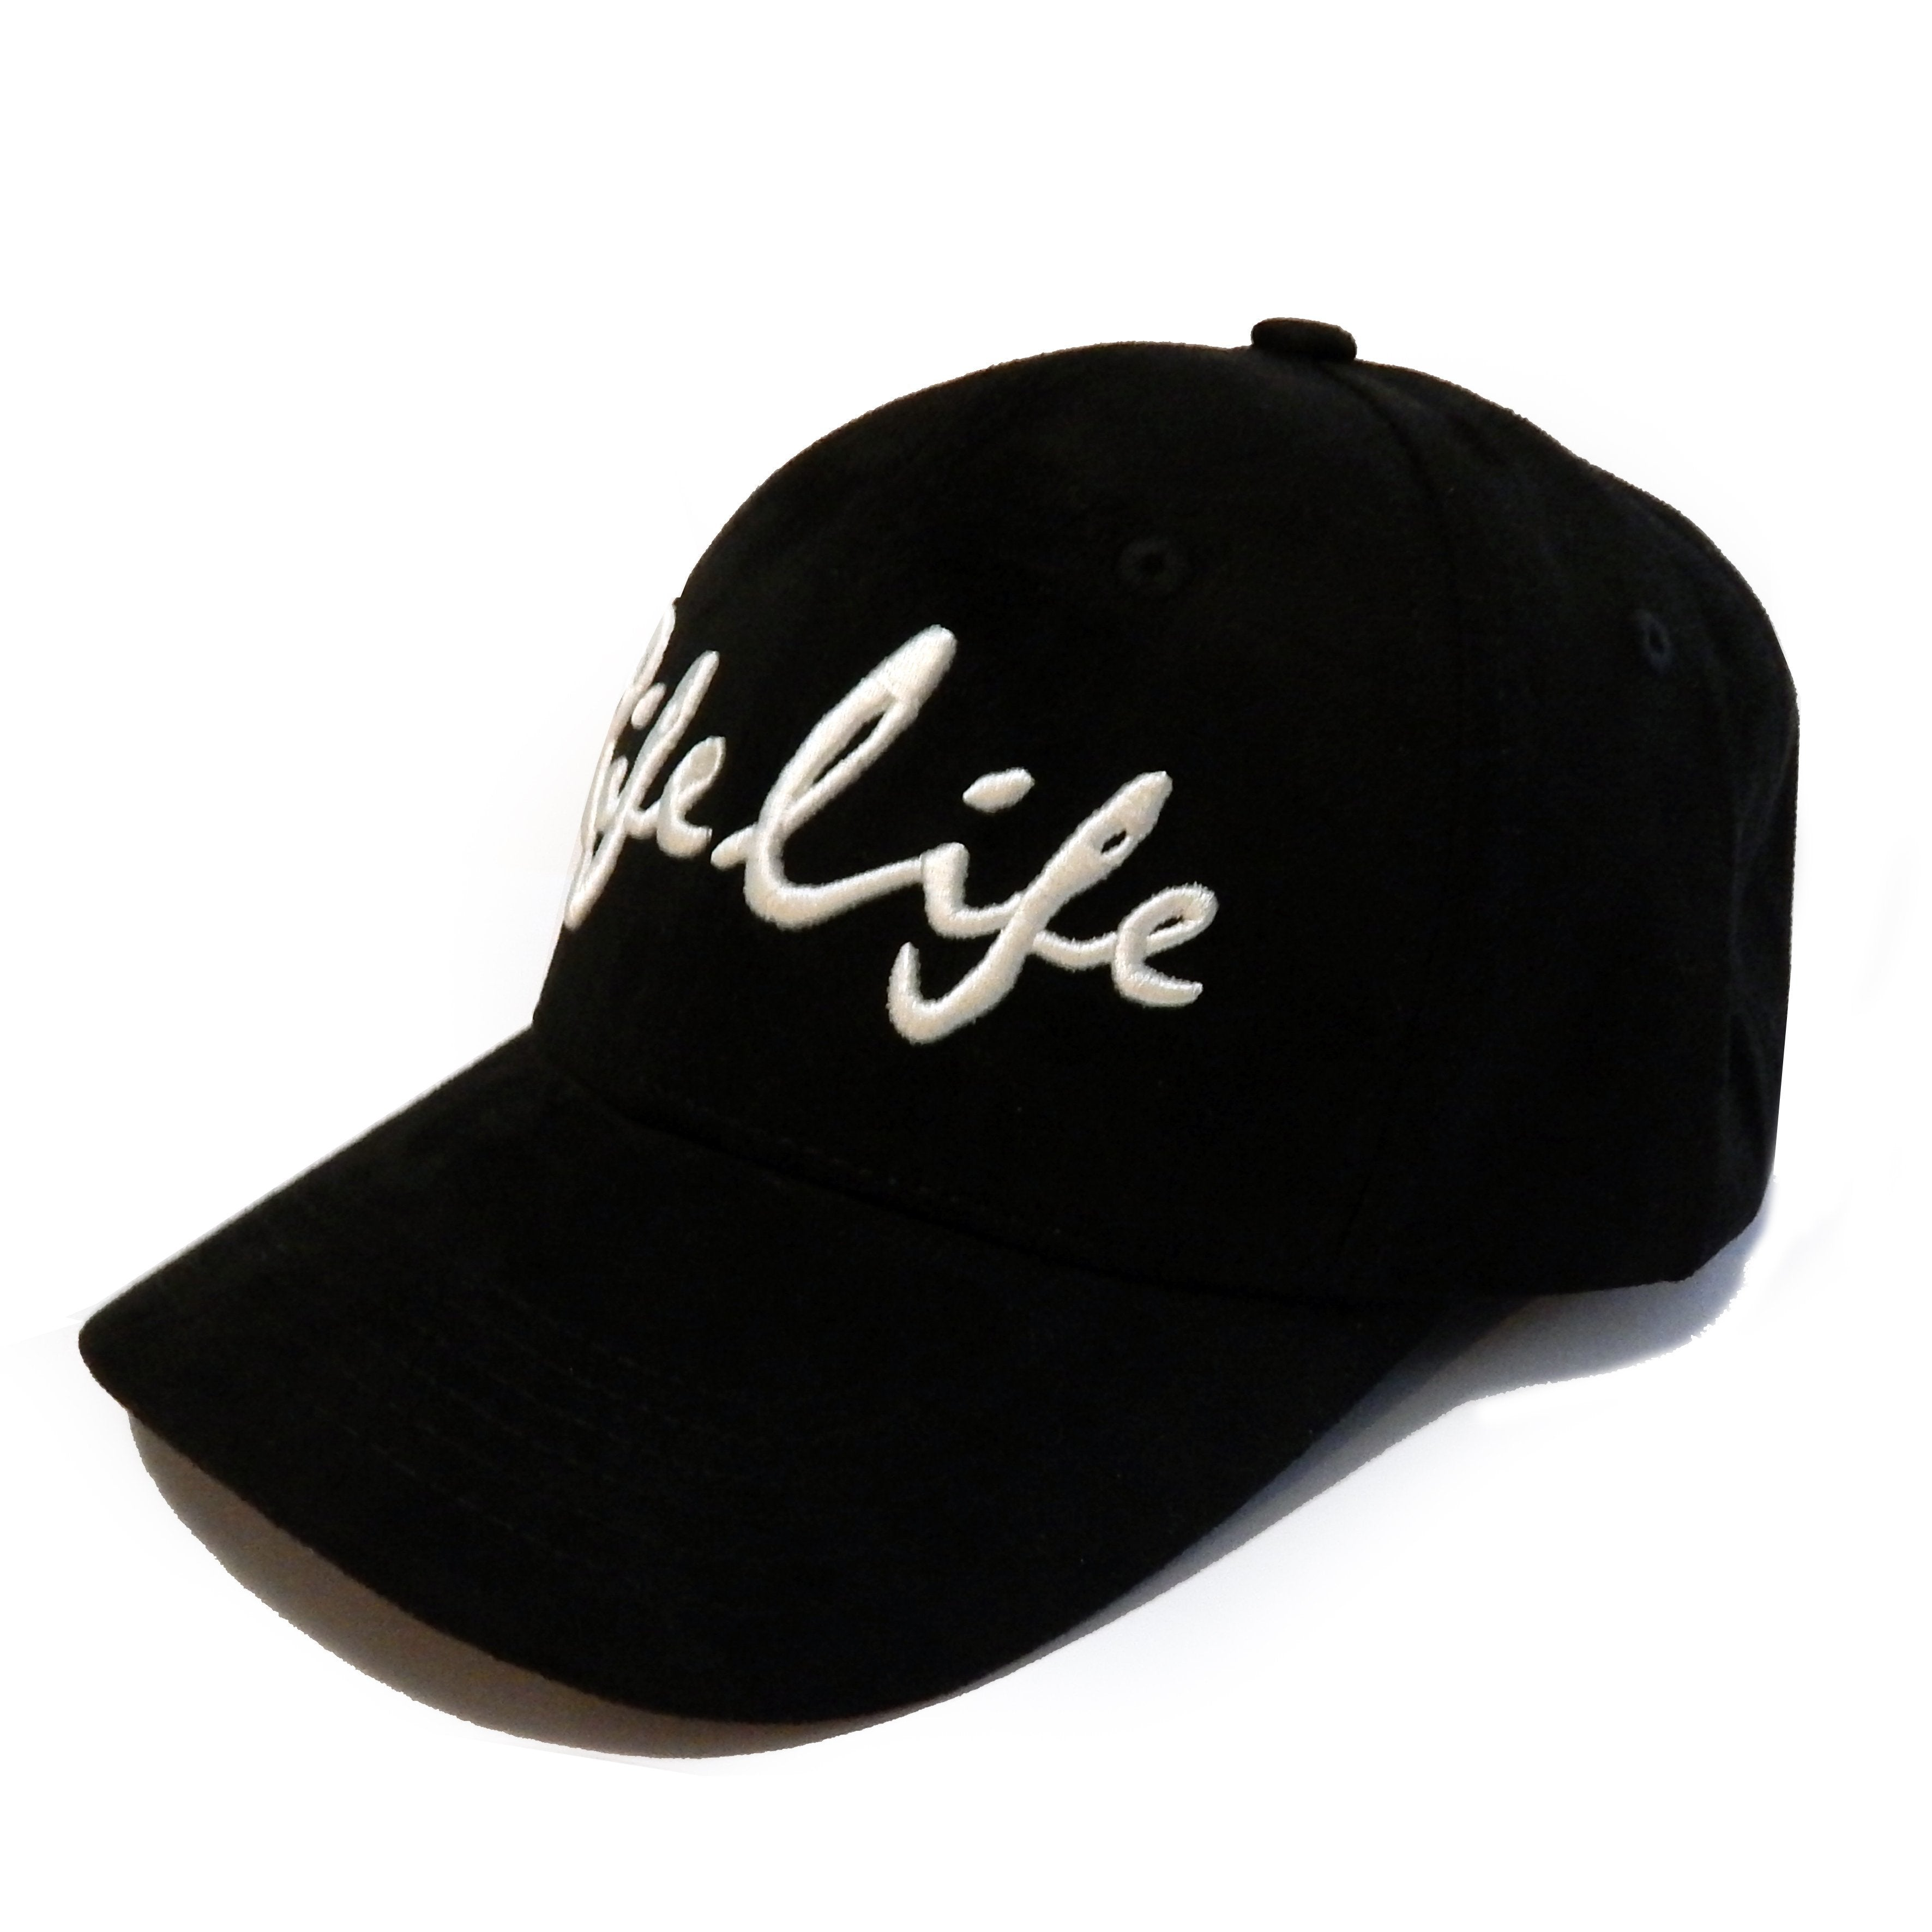 Rifelife black suede snap back cap with 3d embroidery  by Cut the Rife